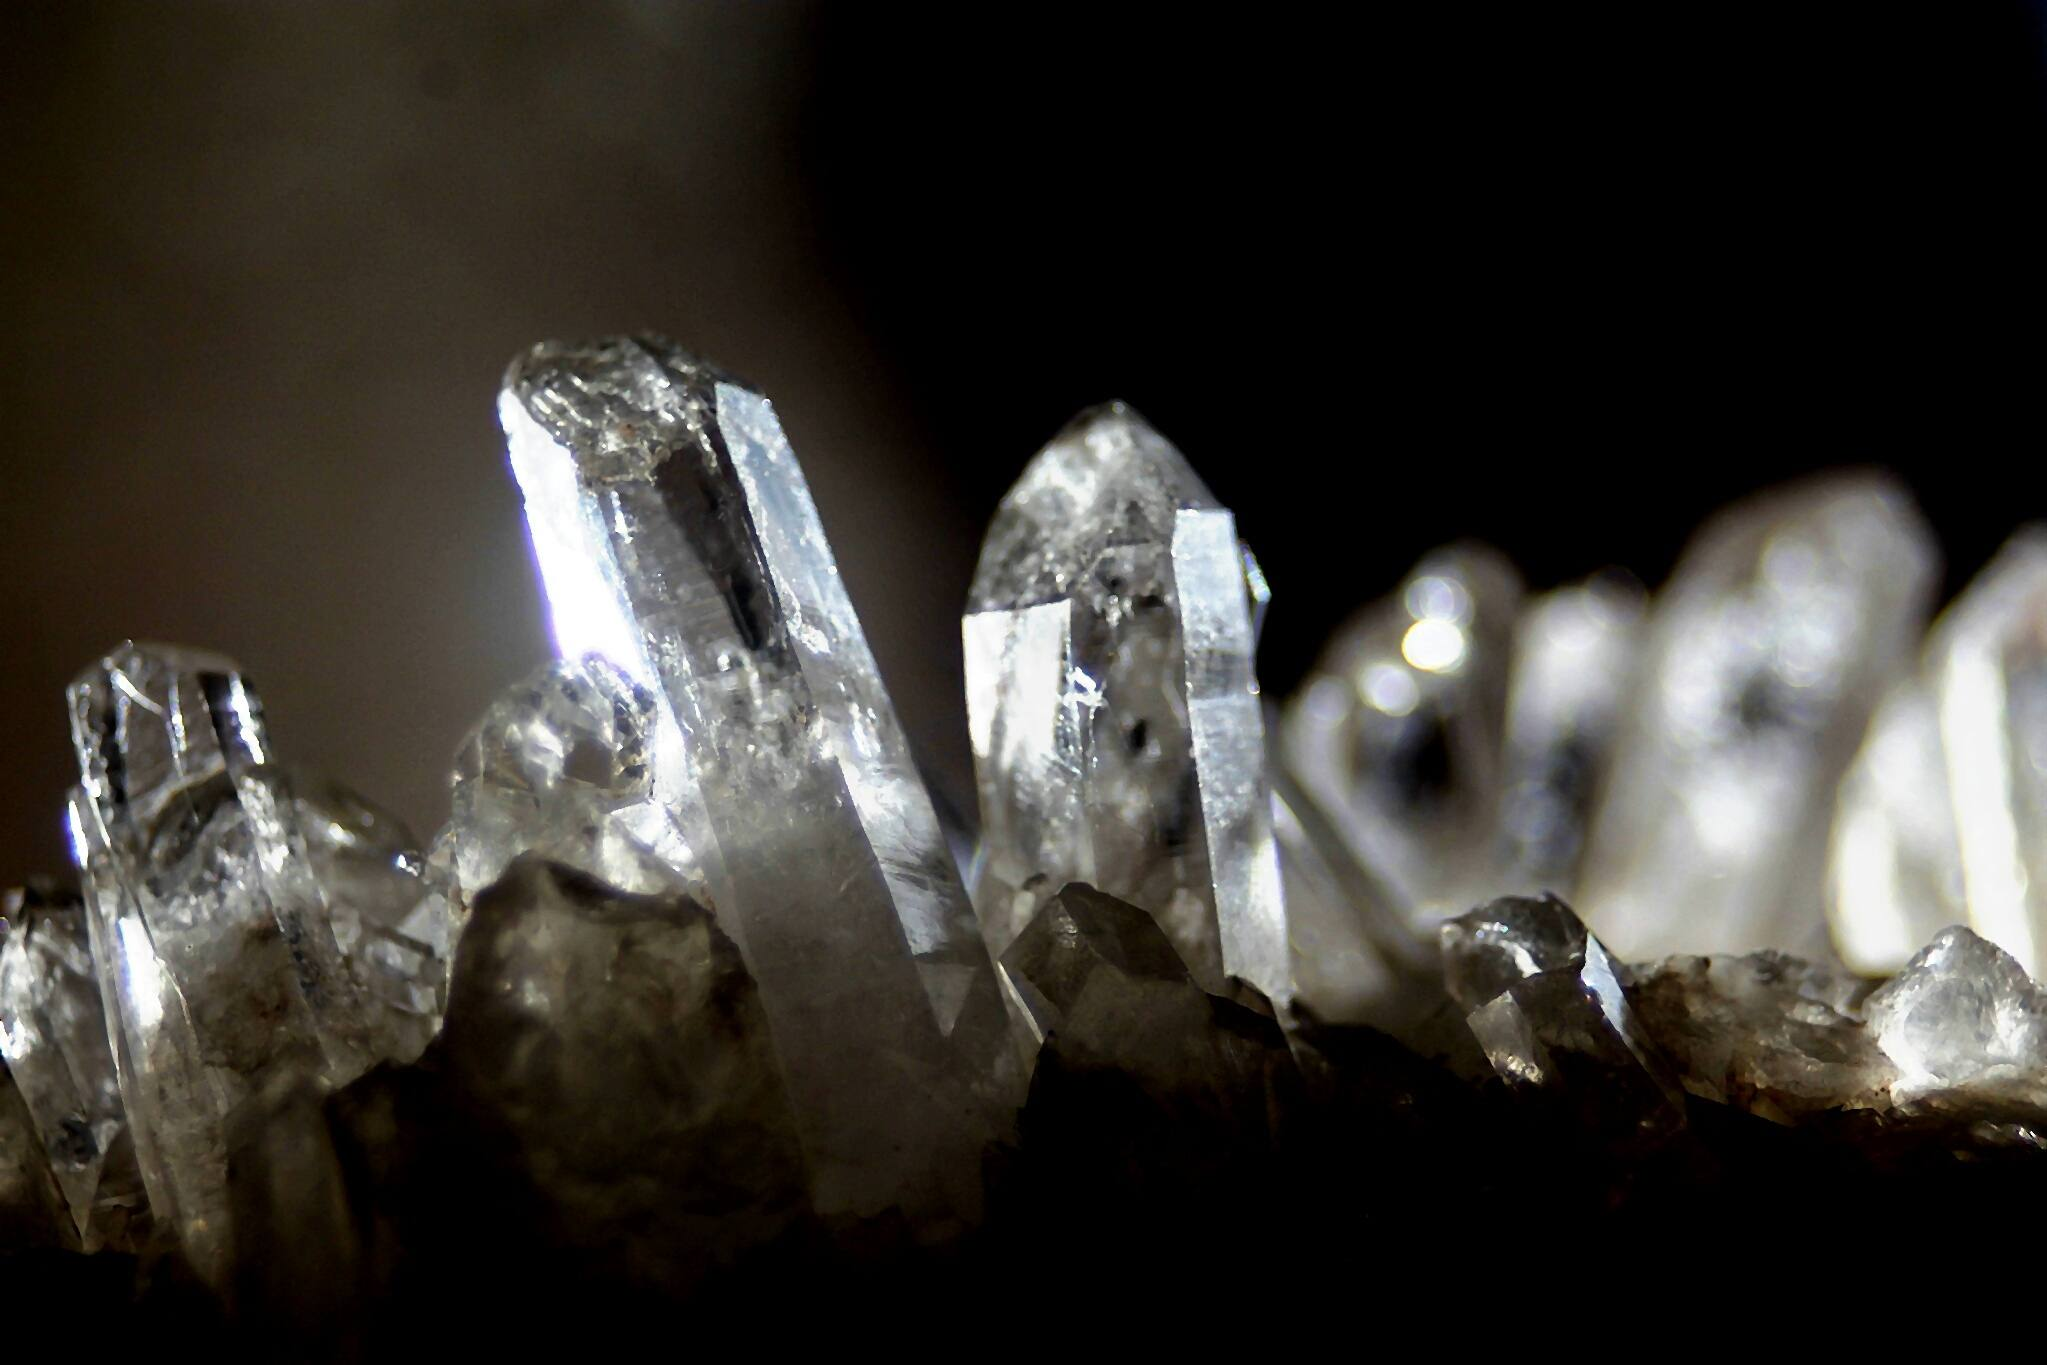 Close up of numerous crystals.